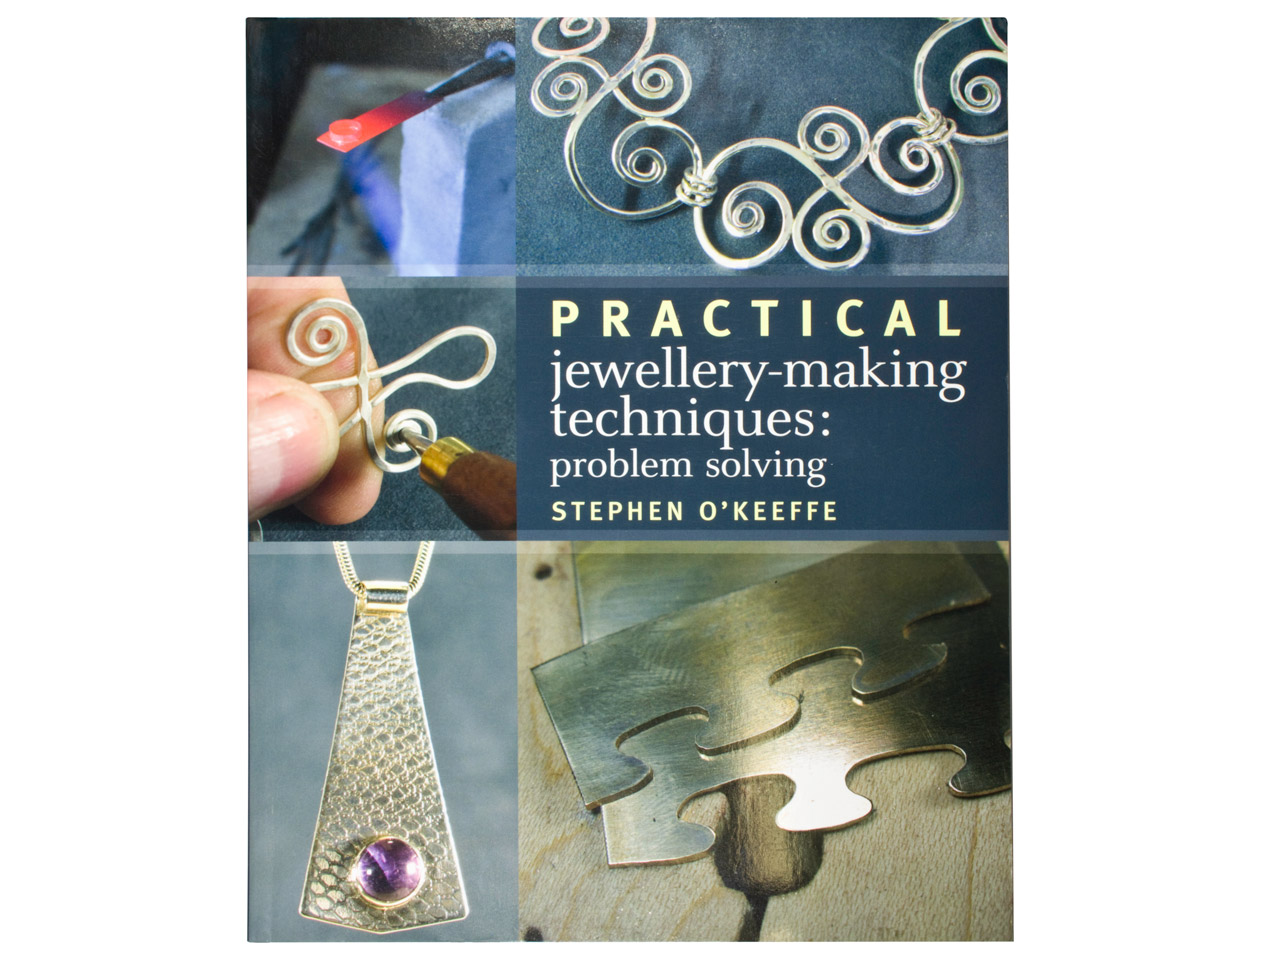 Practical Jewellery Making         Techniques By Stephen O'keeffe